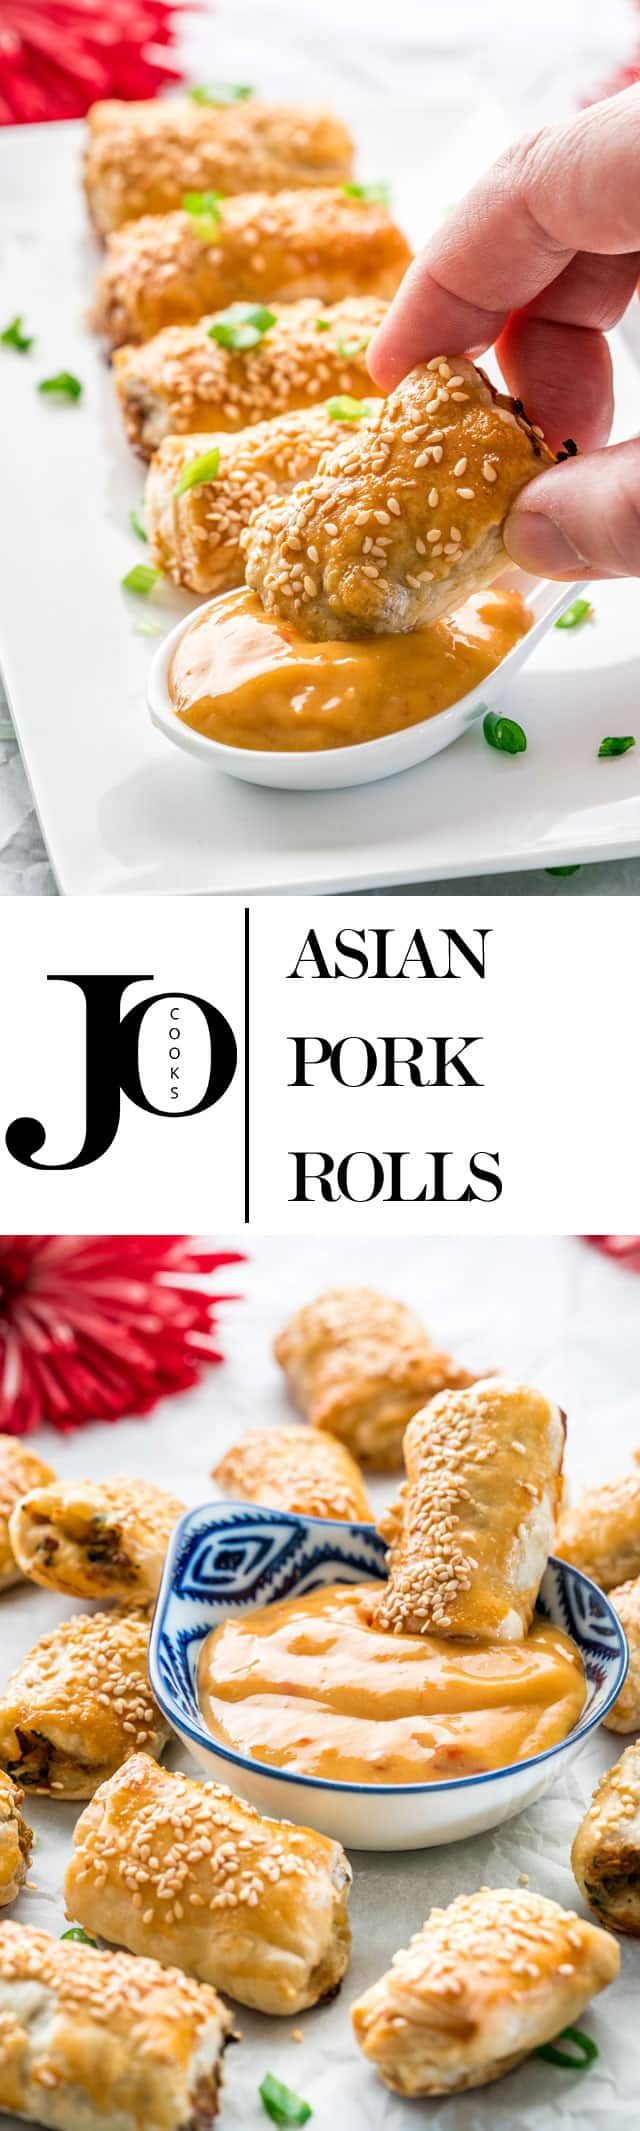 These Asian pork rolls are the perfect party treat or snack. This delicious ground pork and water chestnut mixture is wrapped in puff pastry, cut into little rolls, baked to perfection then served with a spicy honey mustard sauce, making them a quintessential comfort food.